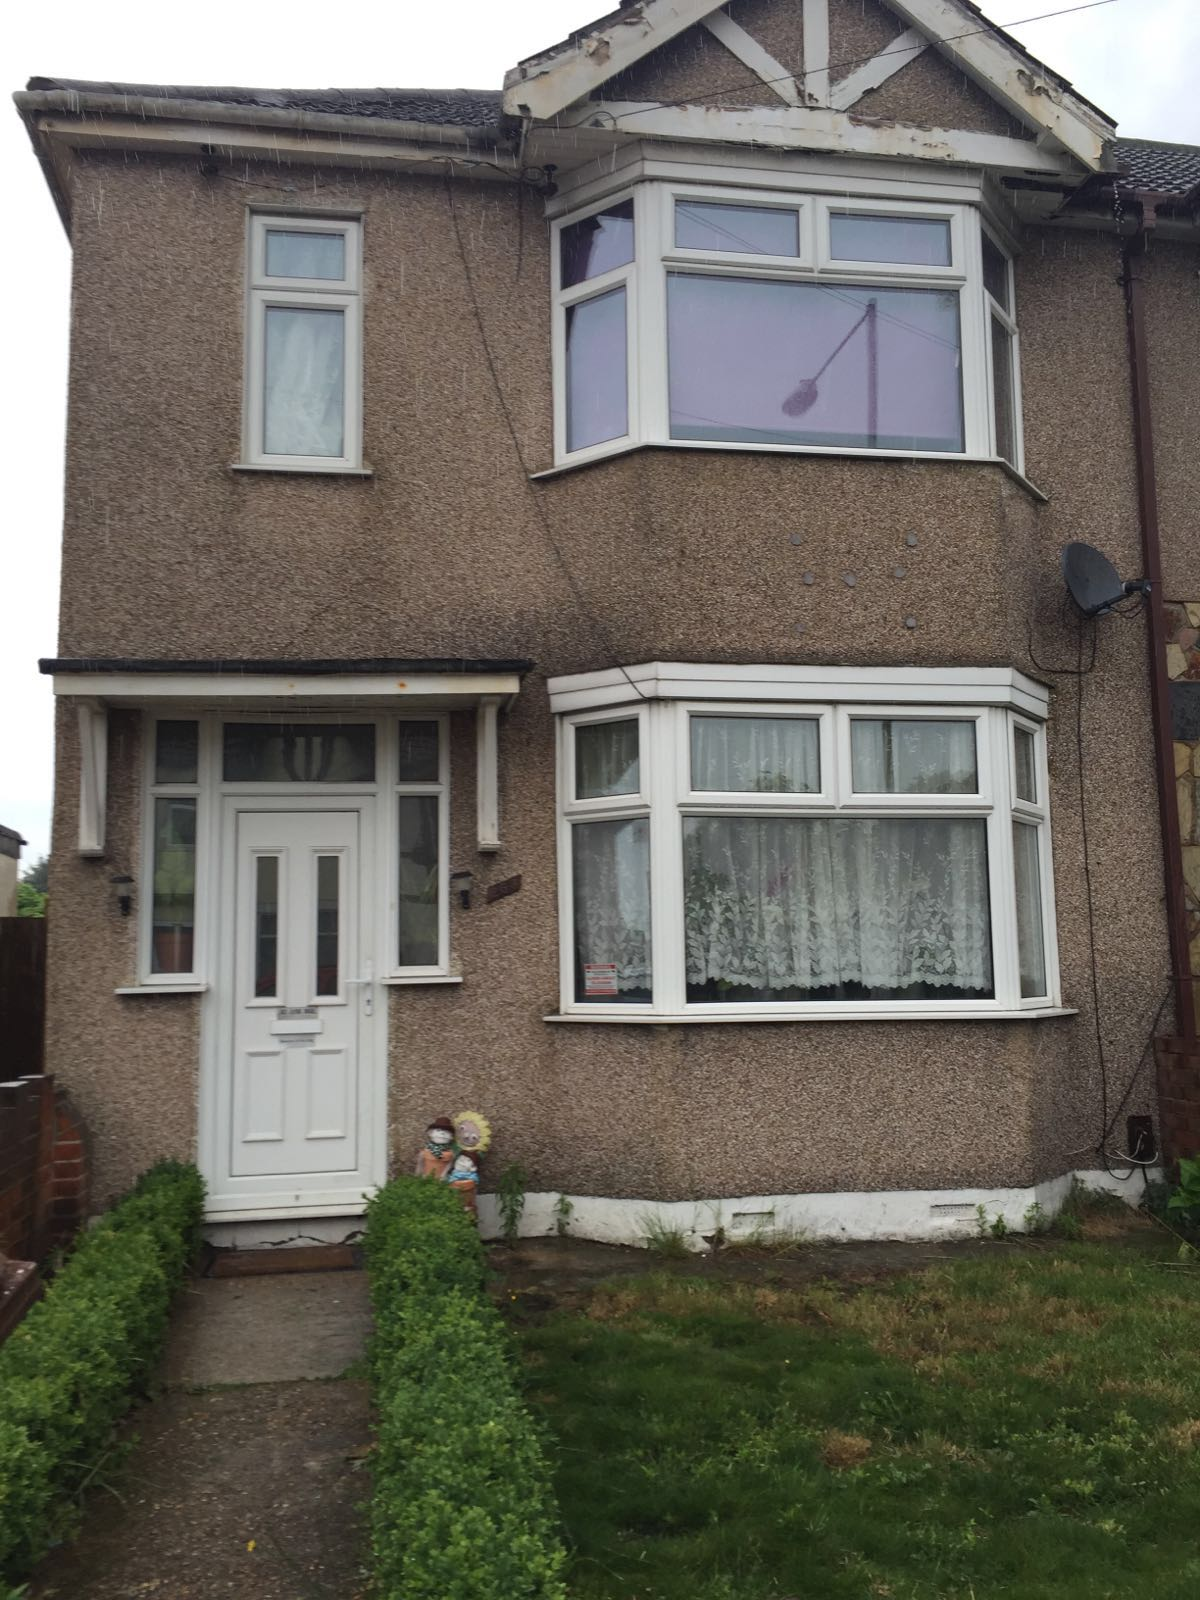 3 bedroom house to let in Reede road, Dagenham, RM10